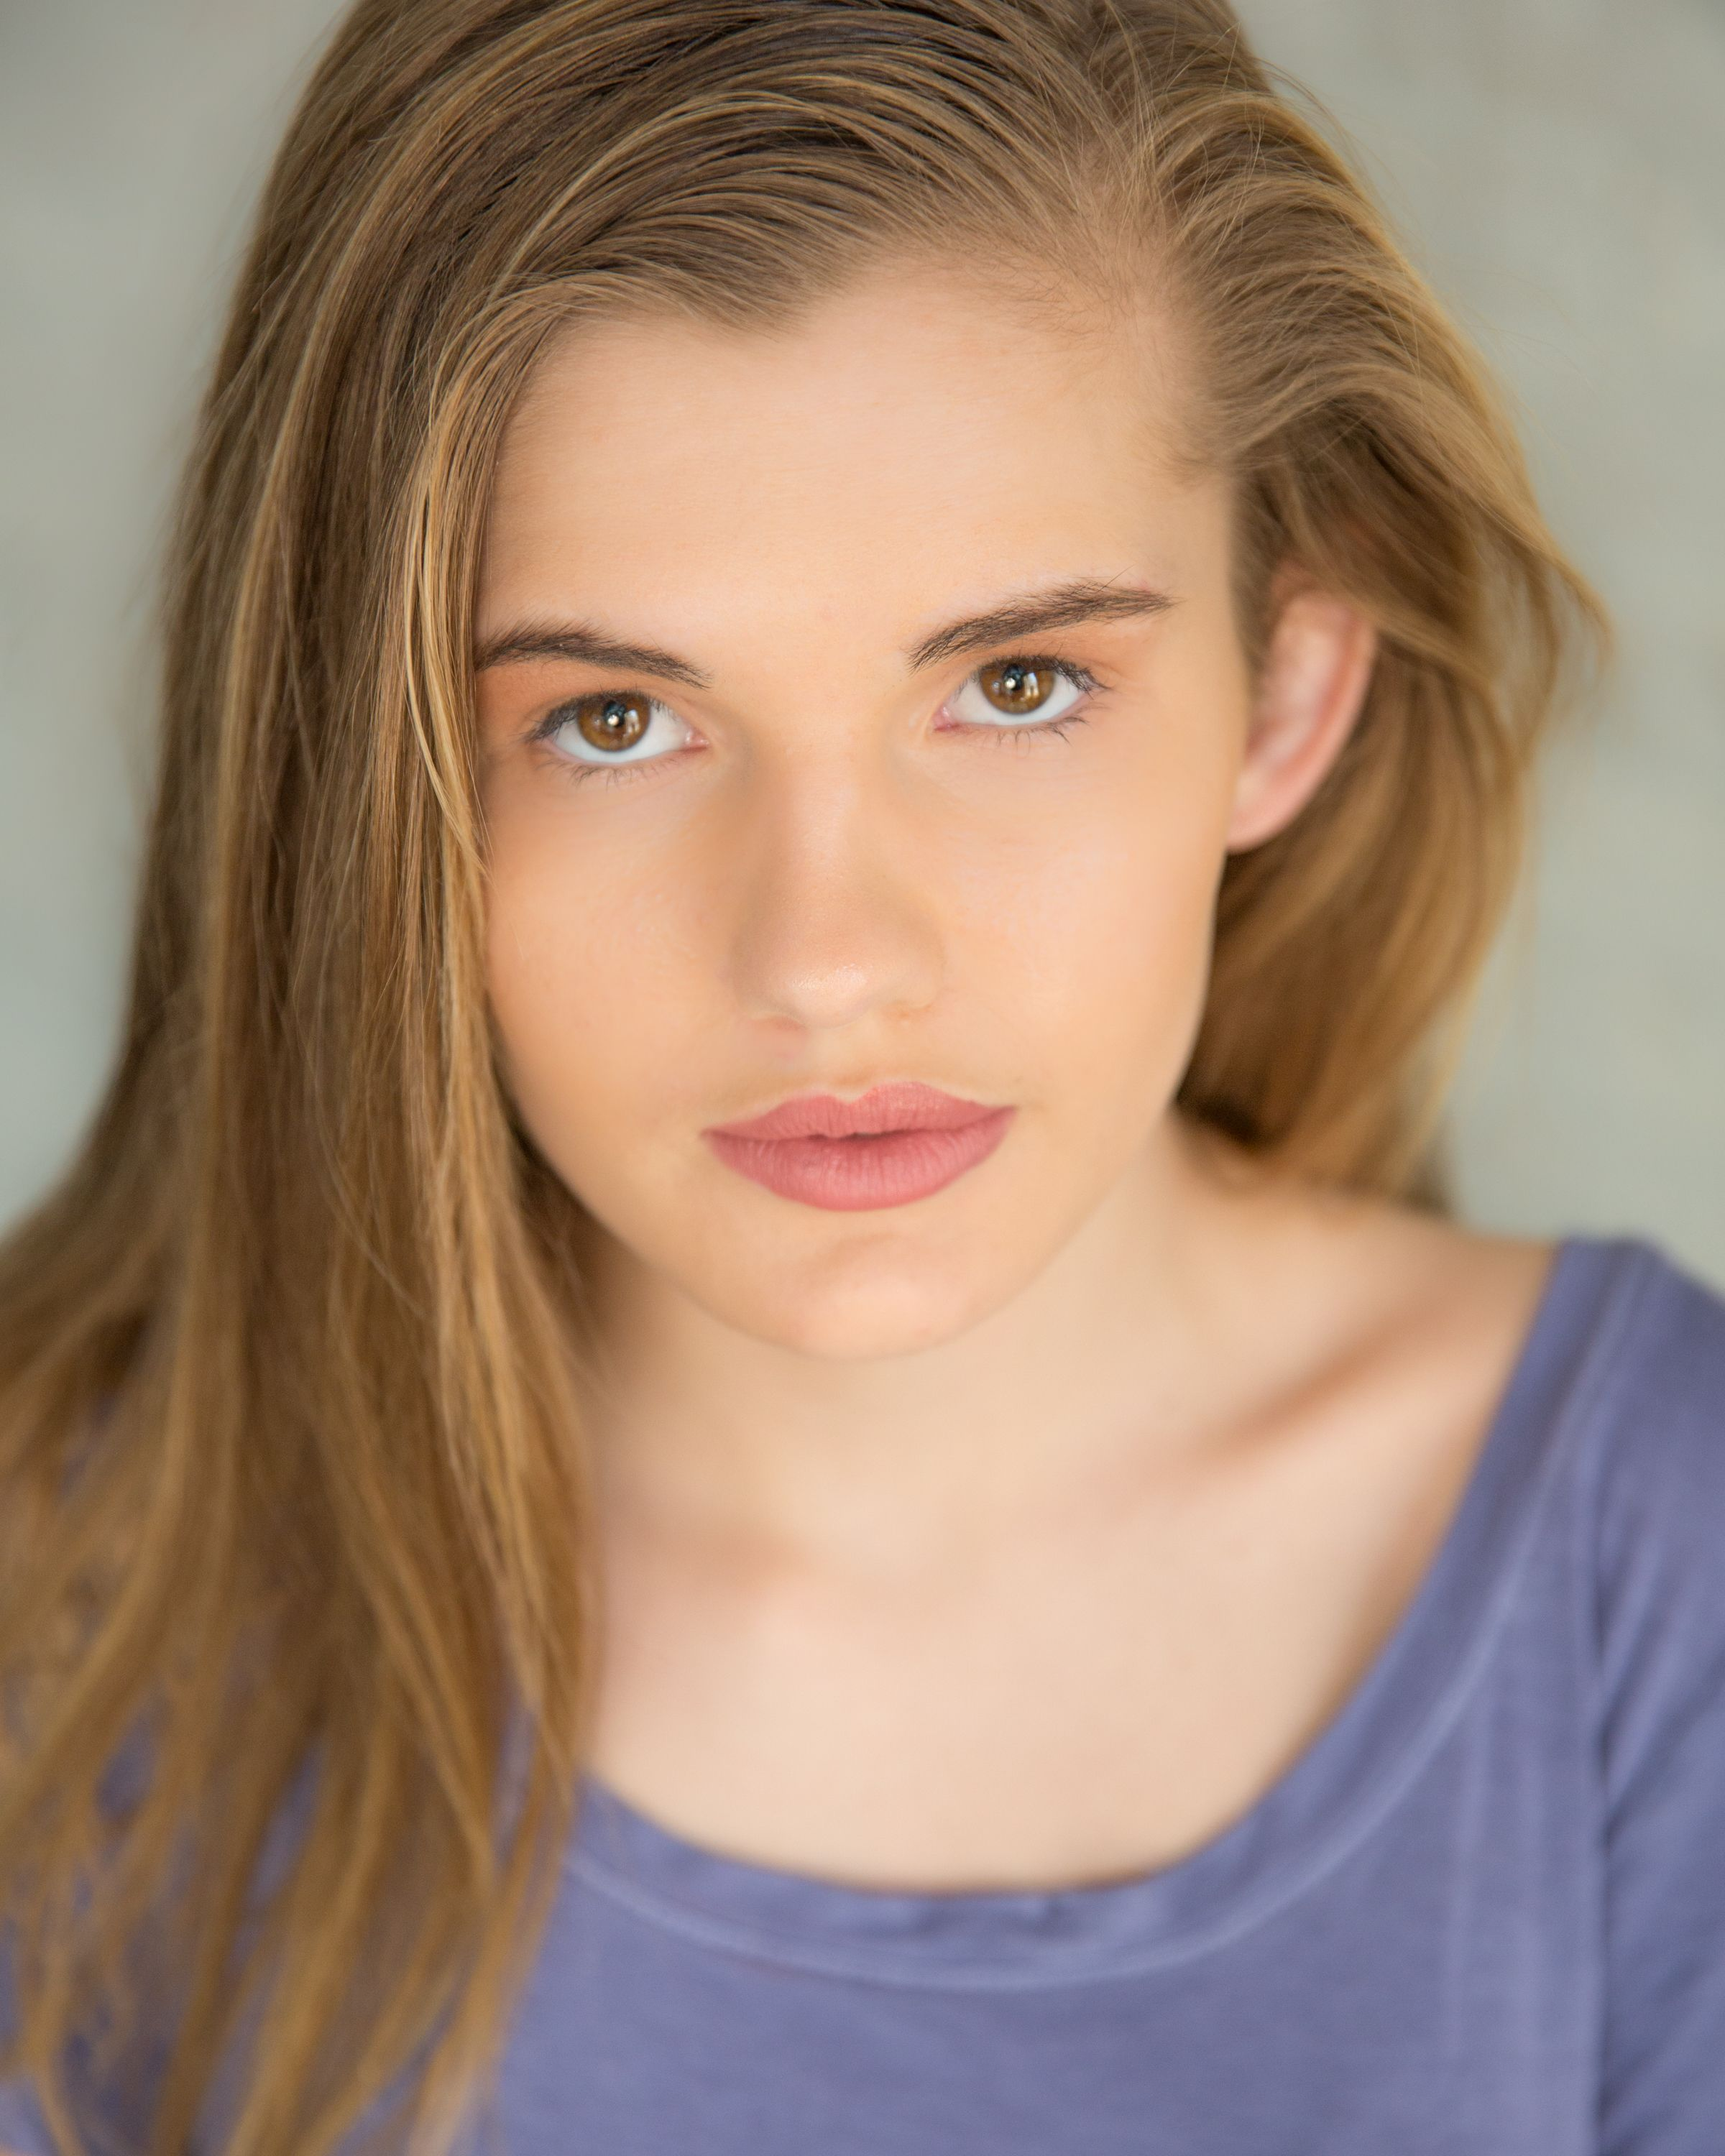 Actor Headshots, By Taylor Staniforth, TayStan Photography